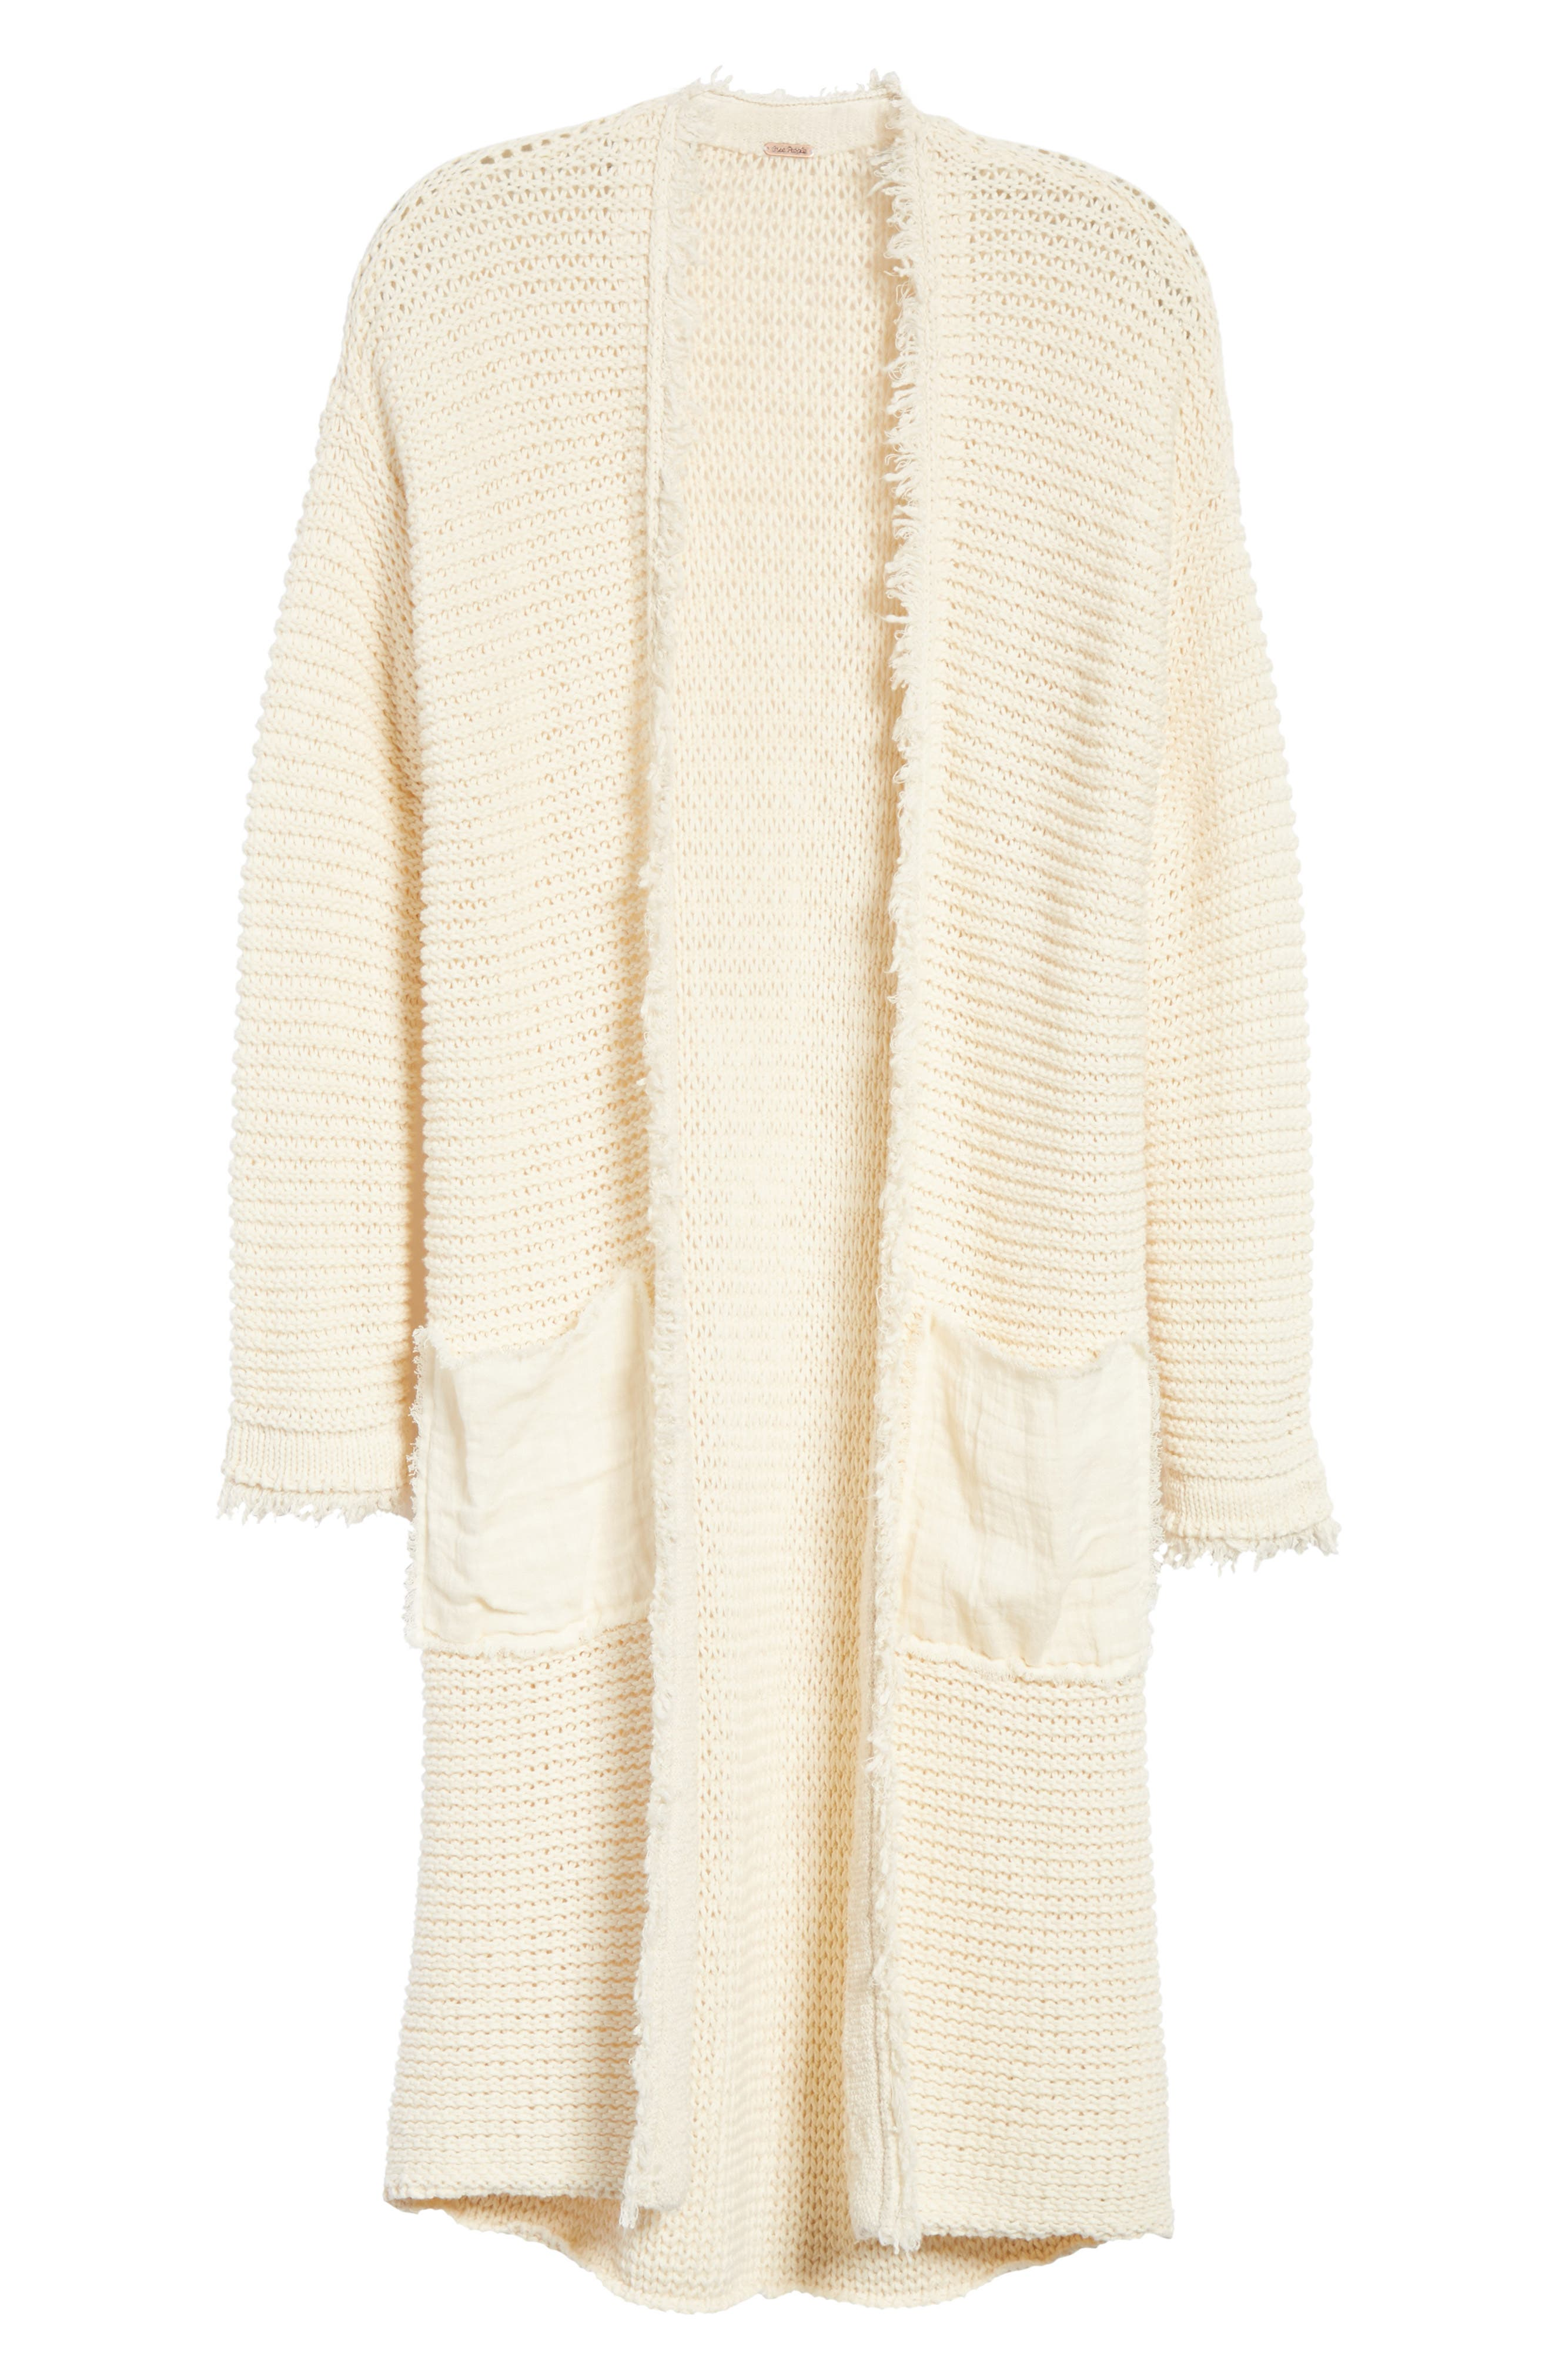 Woodstock Longline Cardigan,                             Alternate thumbnail 6, color,                             Ivory